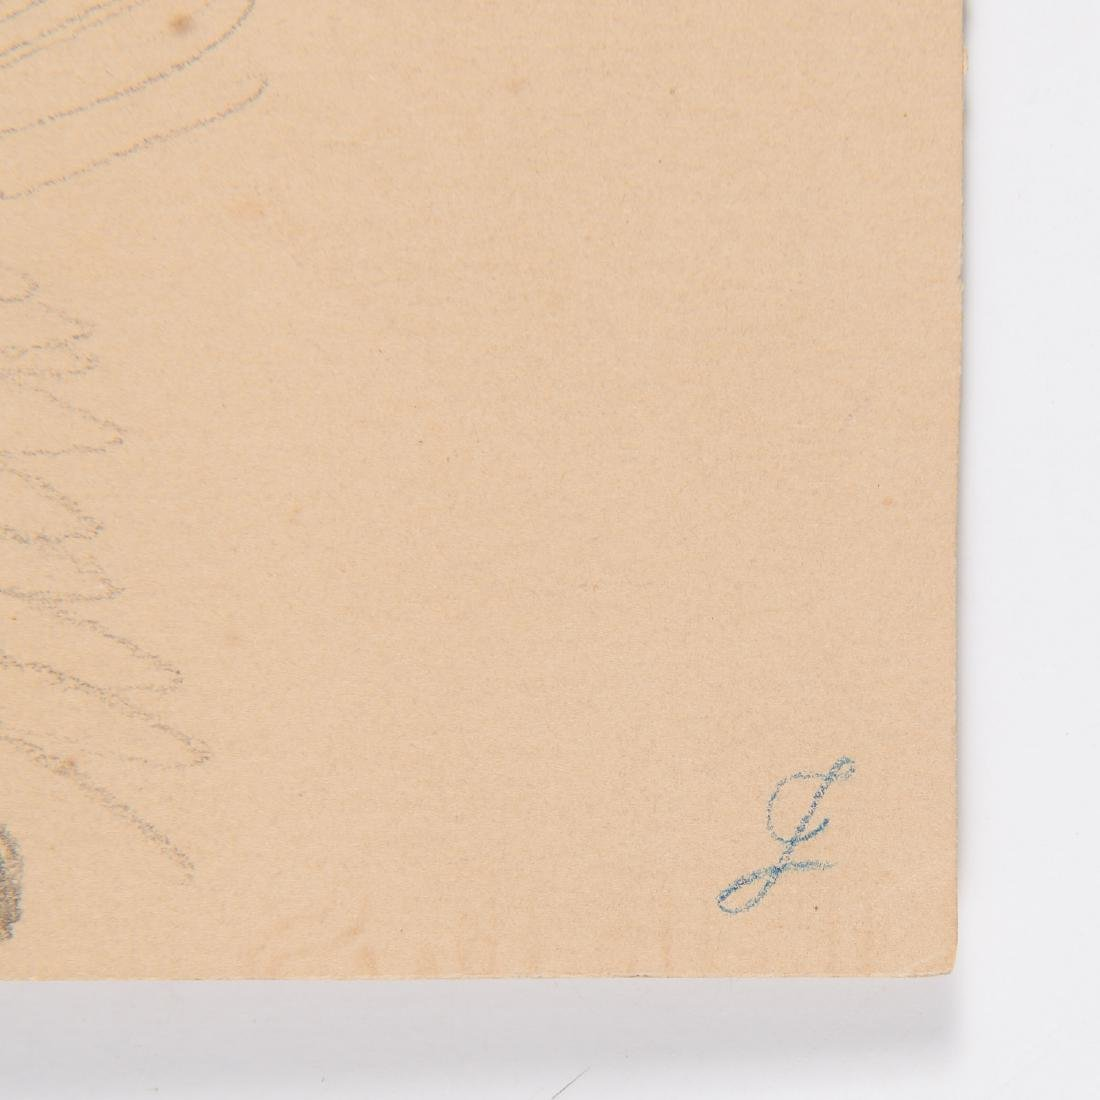 Eugen Neureuther, drawing, c. 1840 - 9